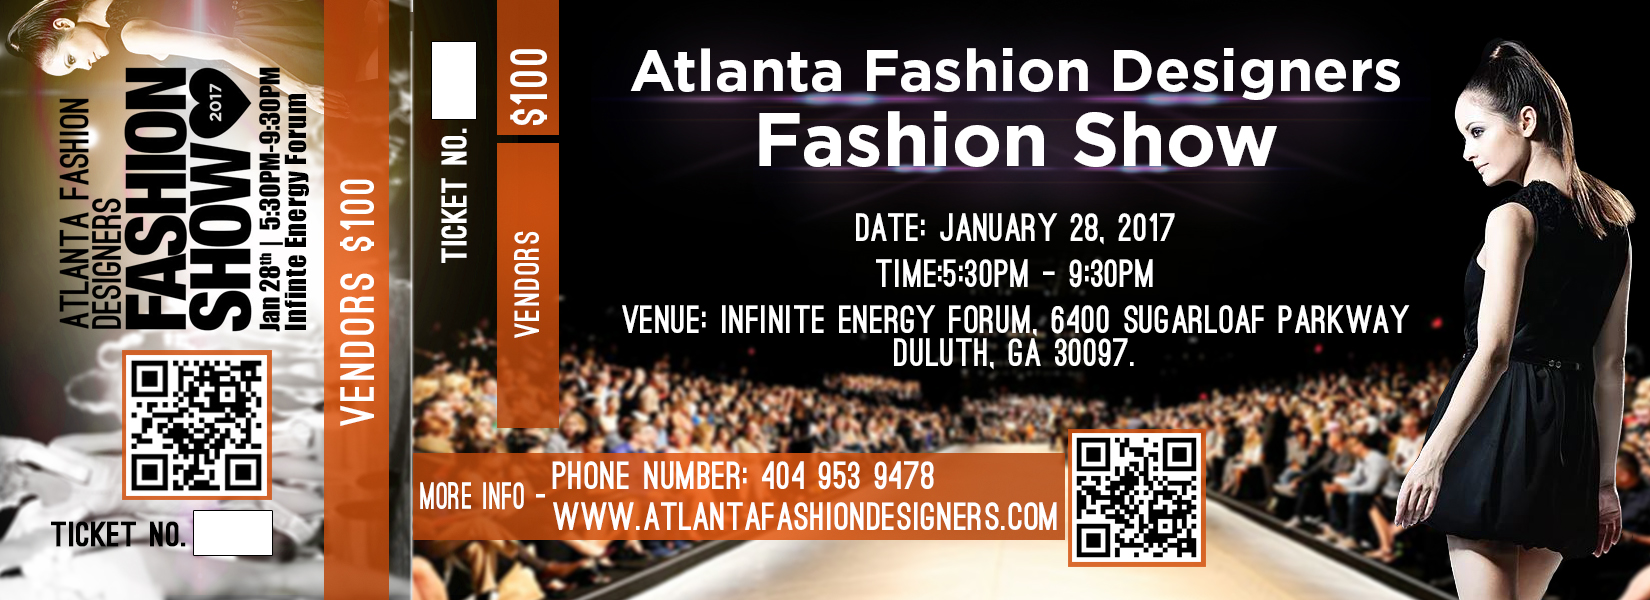 Atlanta Fashion Designers Fashion Show Tickets Are Still Selling Vendors And Fashion Designers Opportunities Still Available Check Out Websites Atlantagist